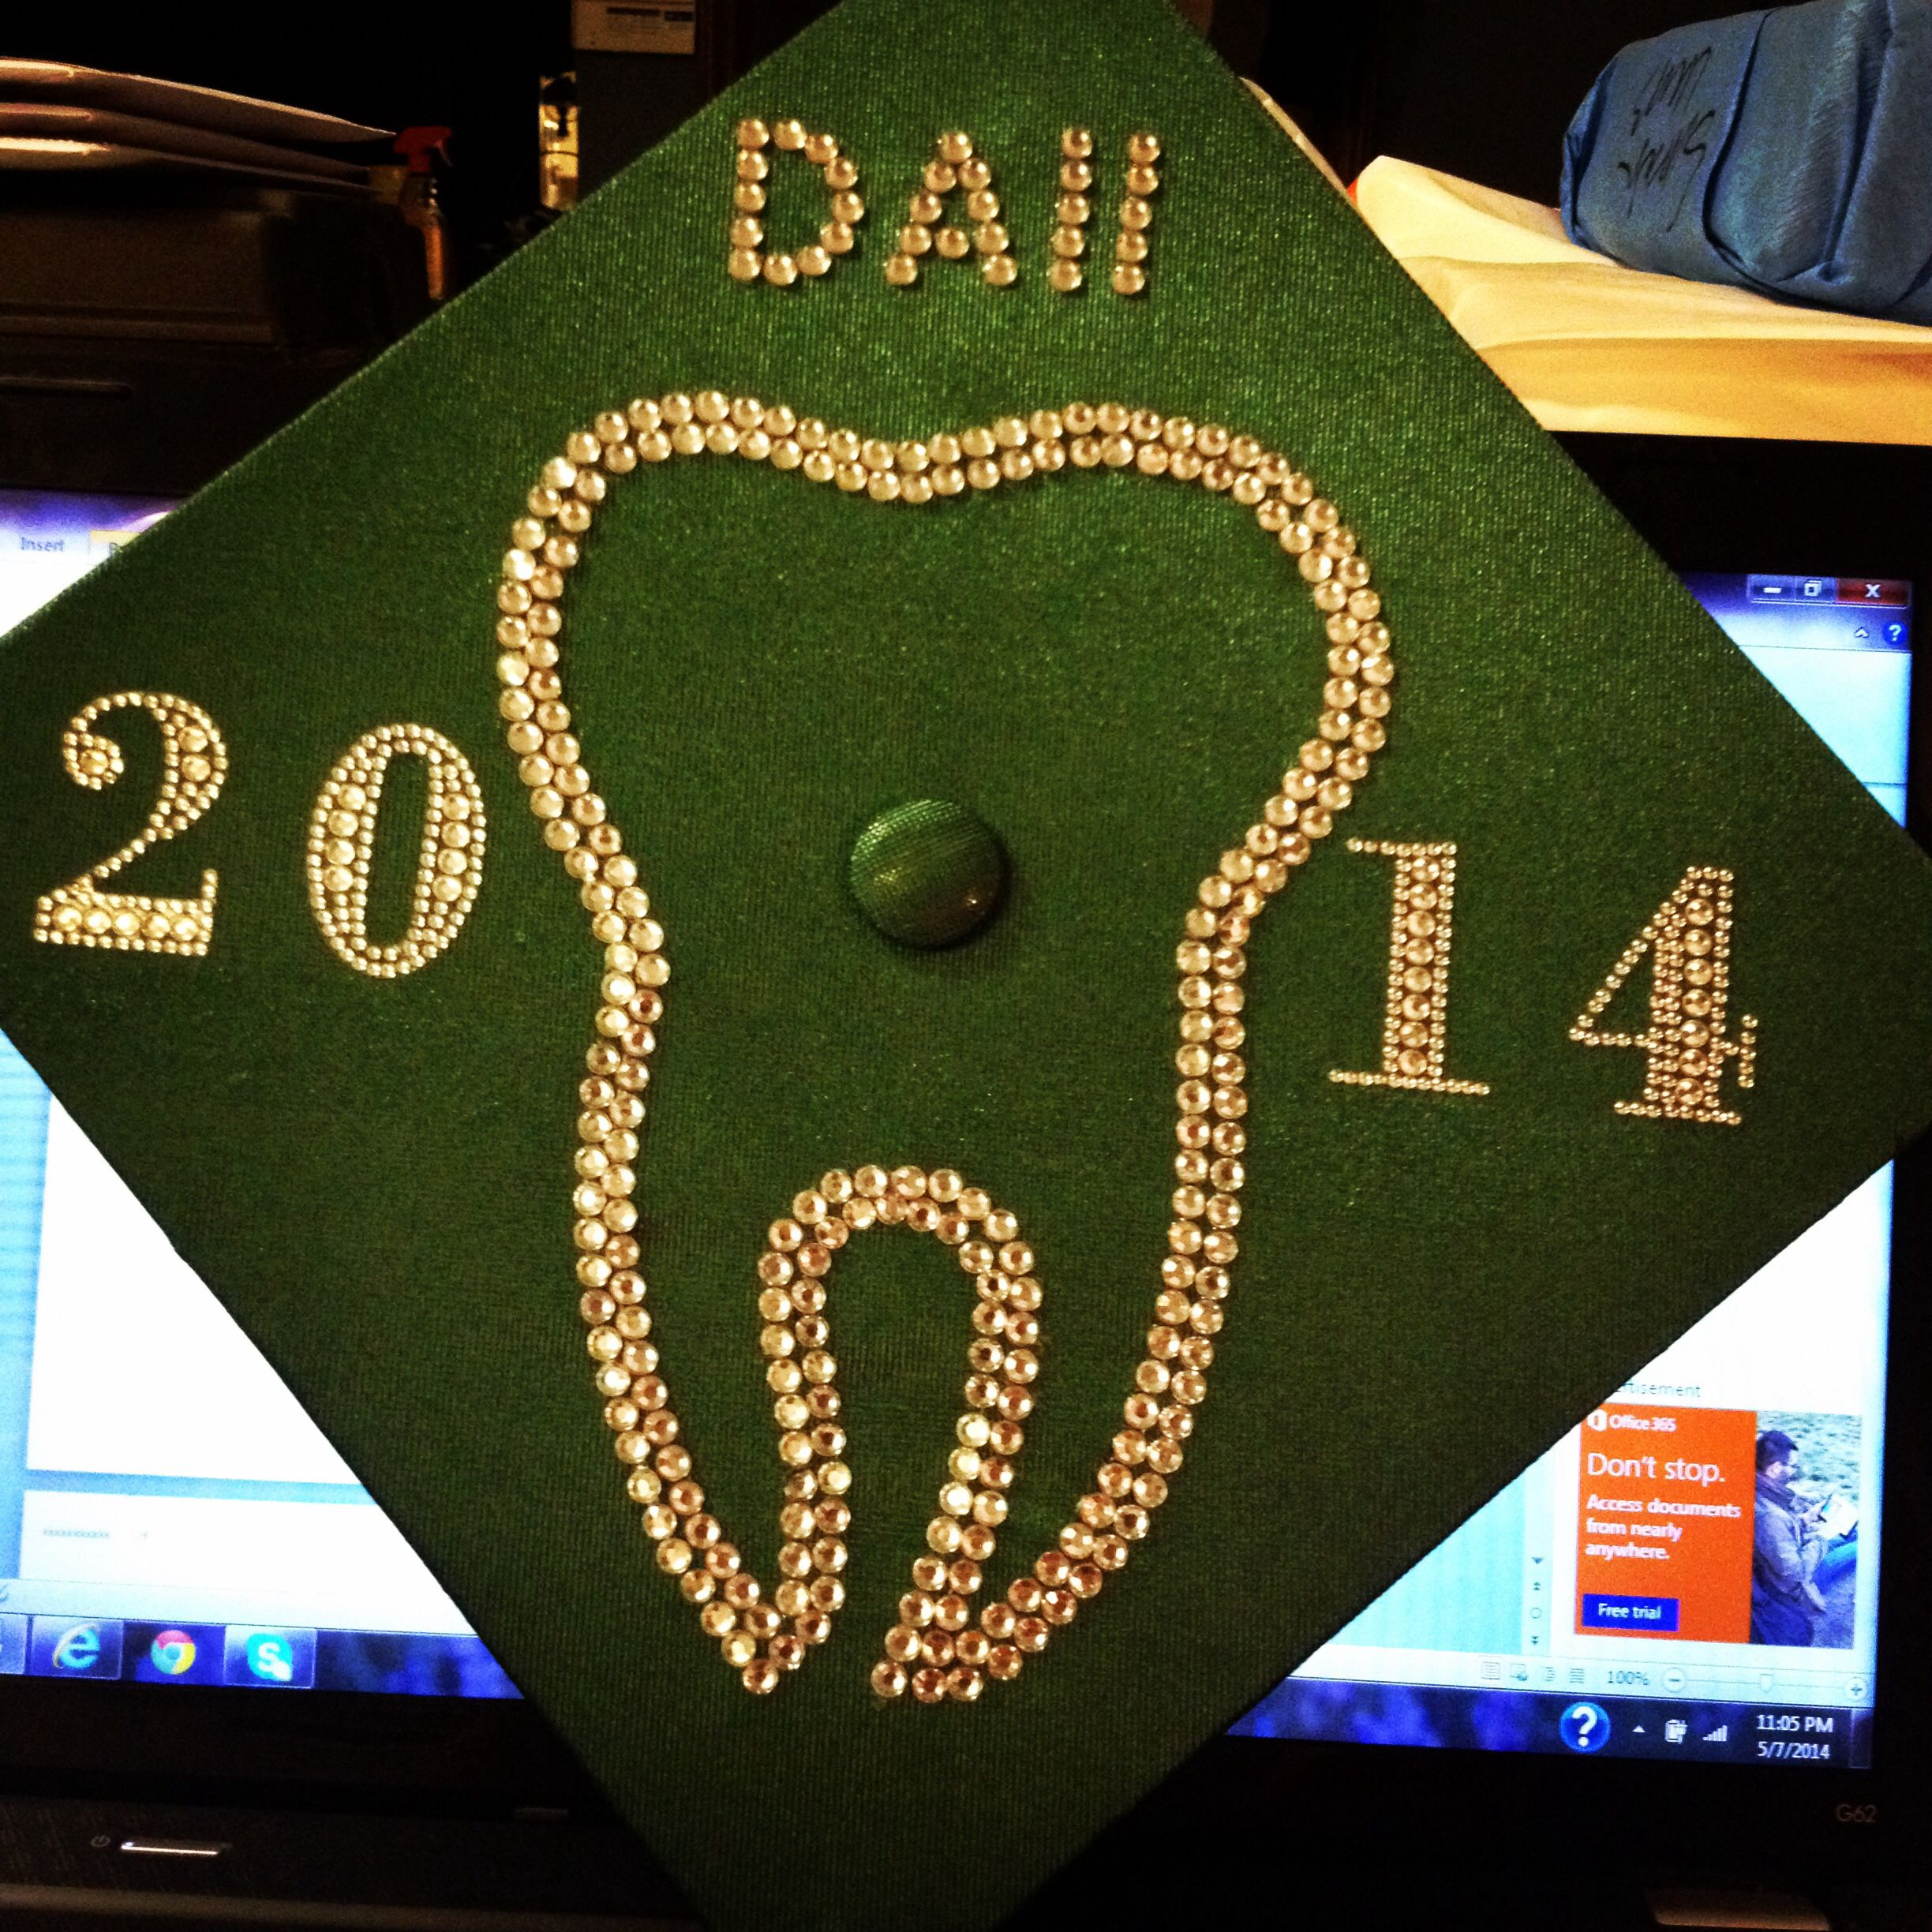 dental assistant ii graduation cap decoration craft ideas dental assistant ii graduation cap decoration